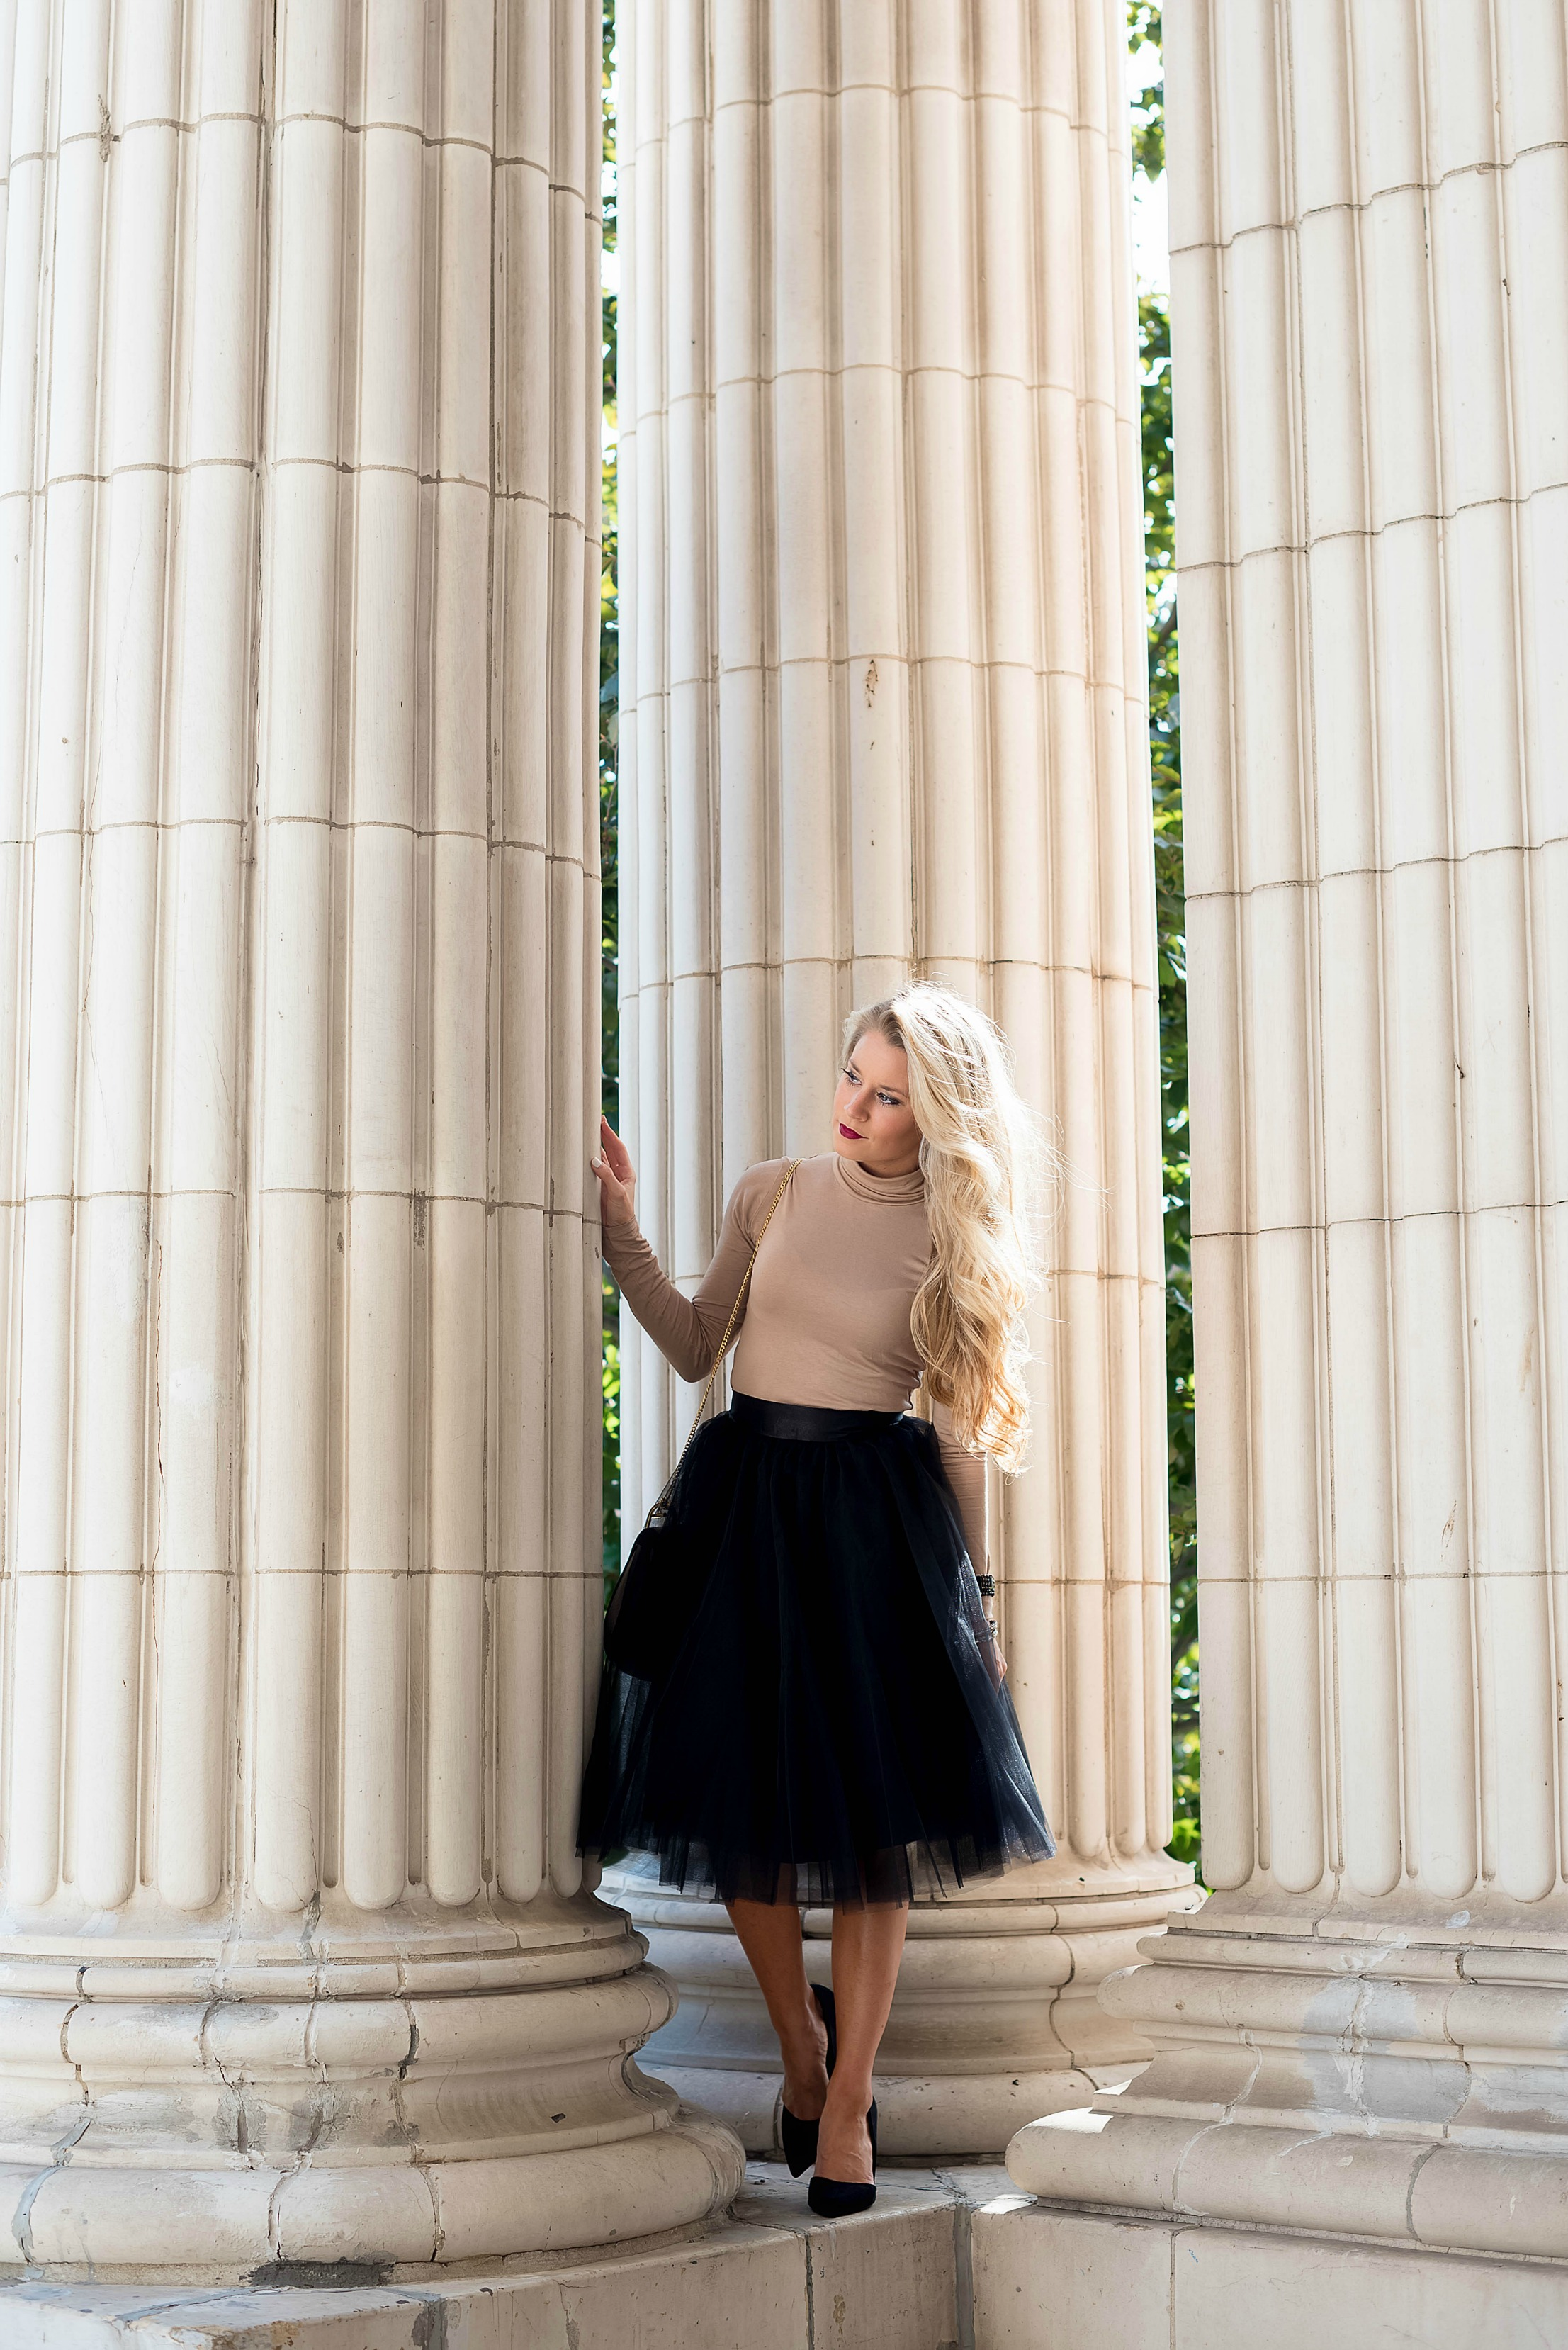 How To Style A Tulle Skirt Welcome To Olivia Rink